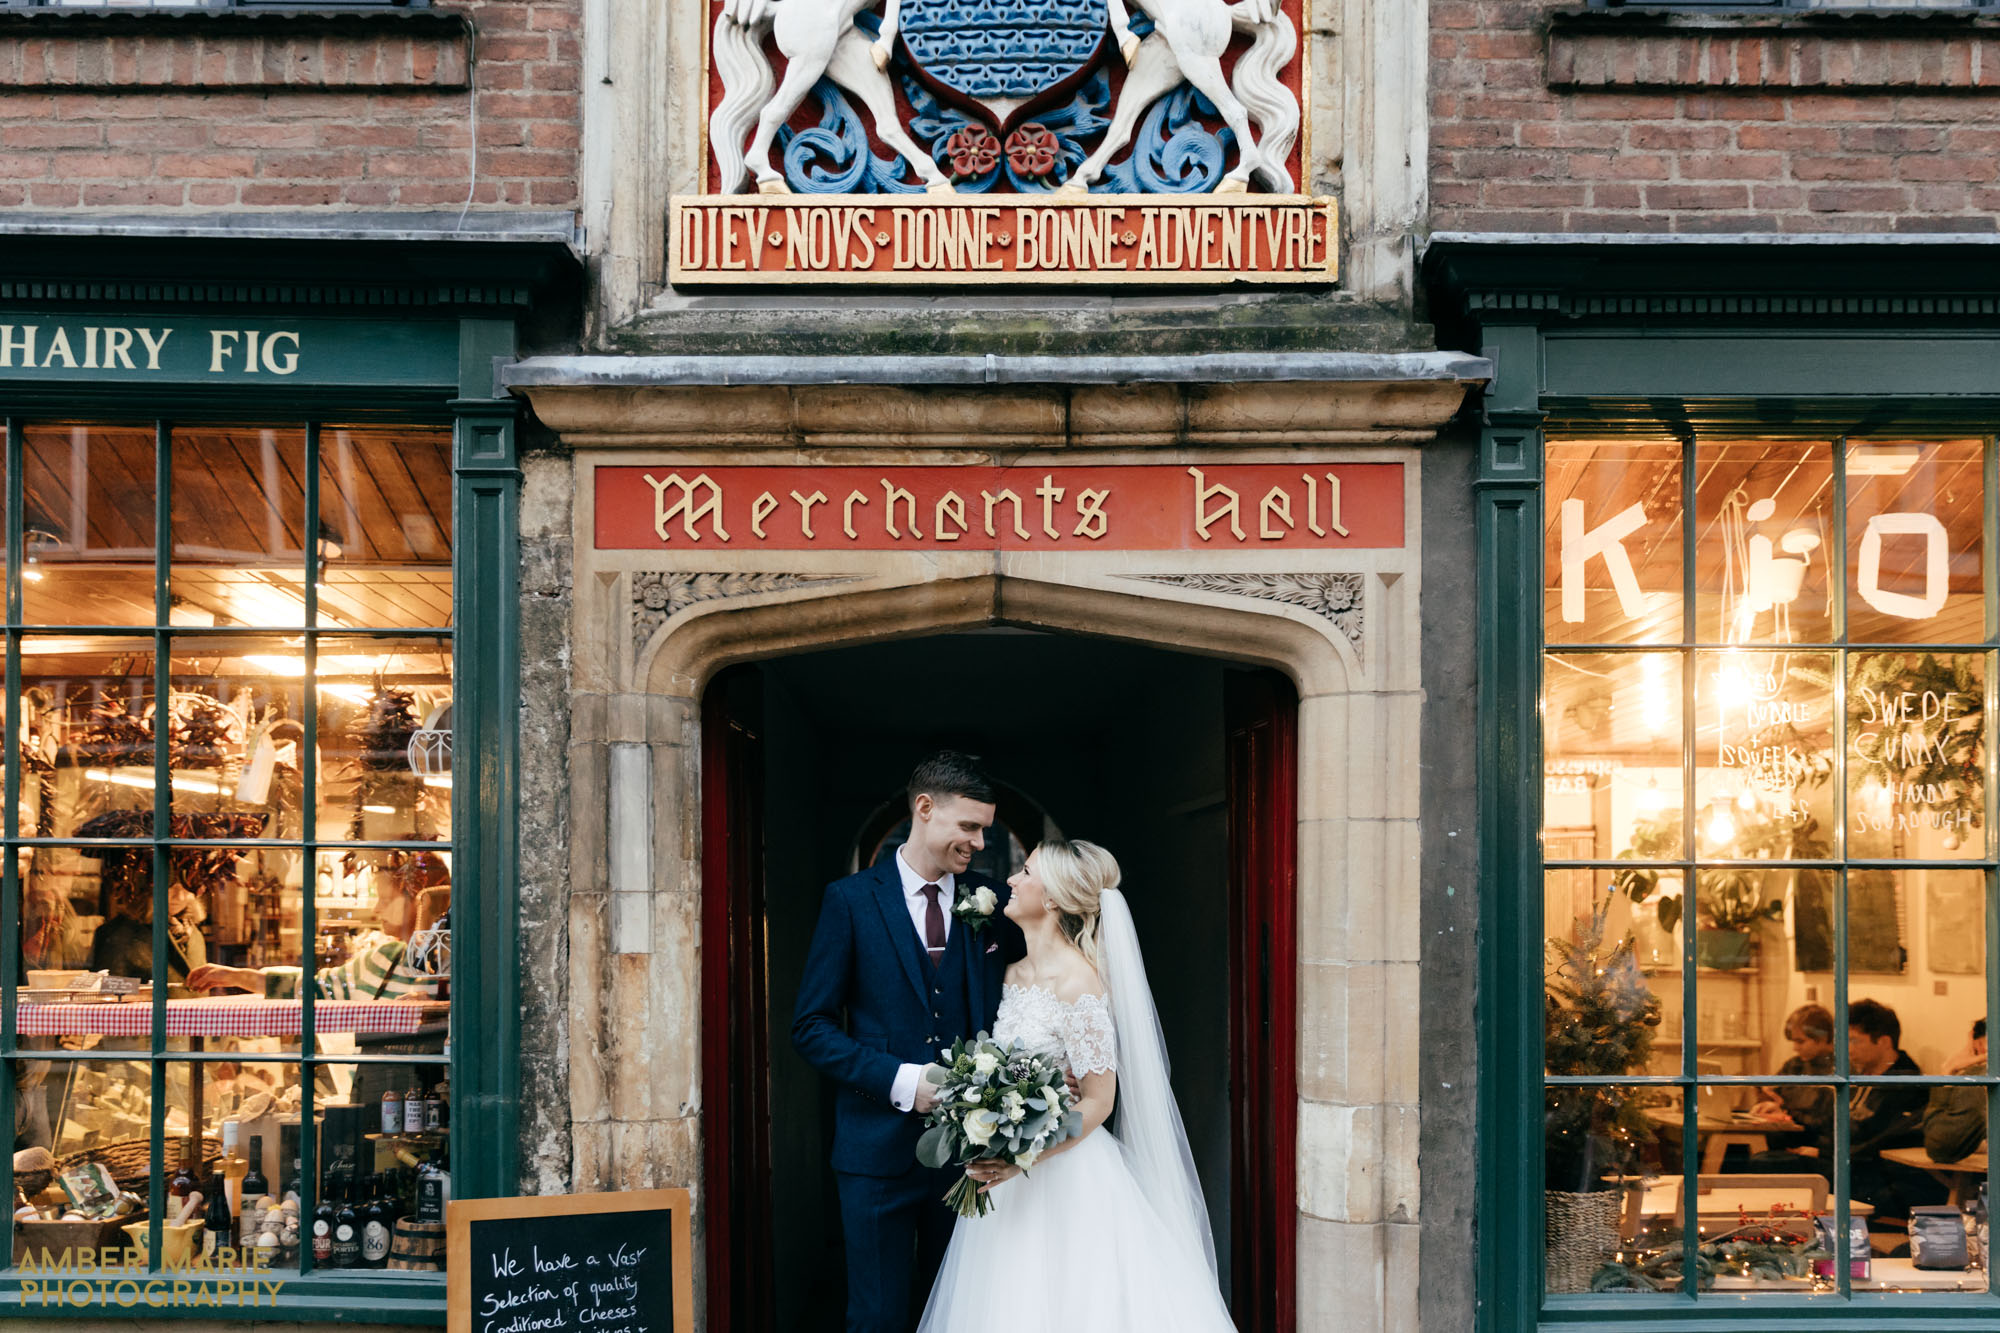 merchants adventurers hall wedding